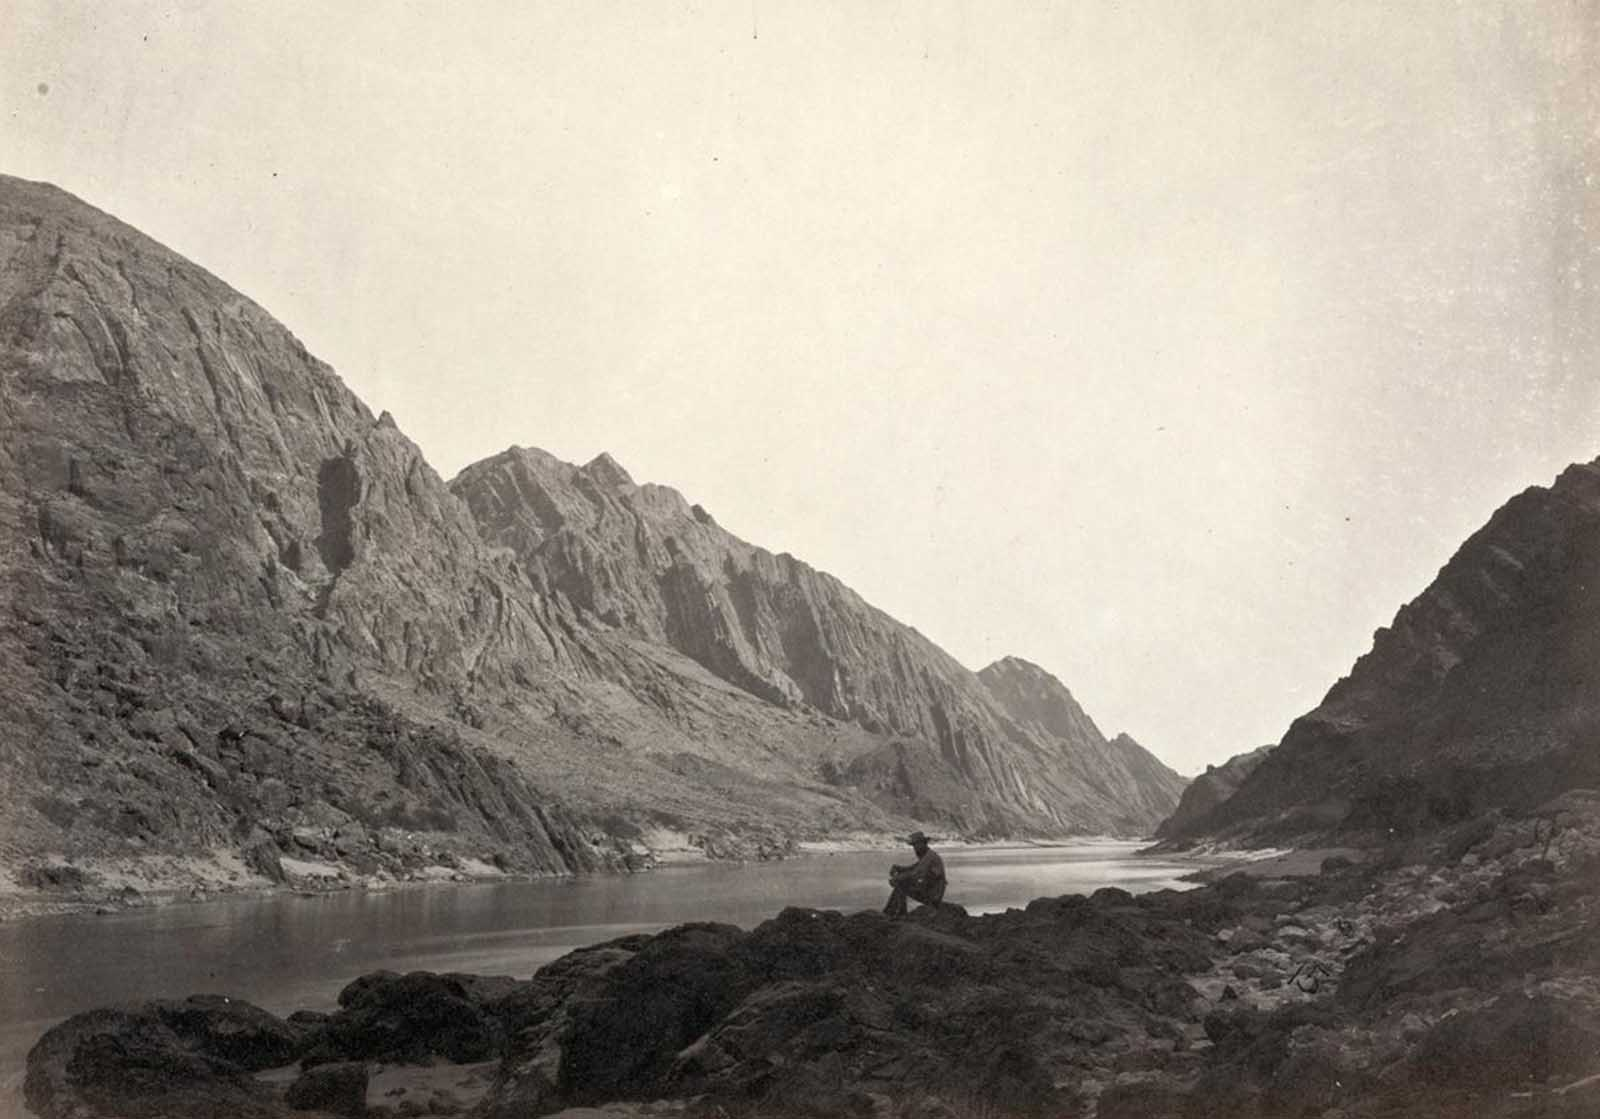 A man sits on a rocky shore beside the Colorado River in Iceberg Canyon, on the border of Mojave County, Arizona, and Clark County, Nevada in 1871.